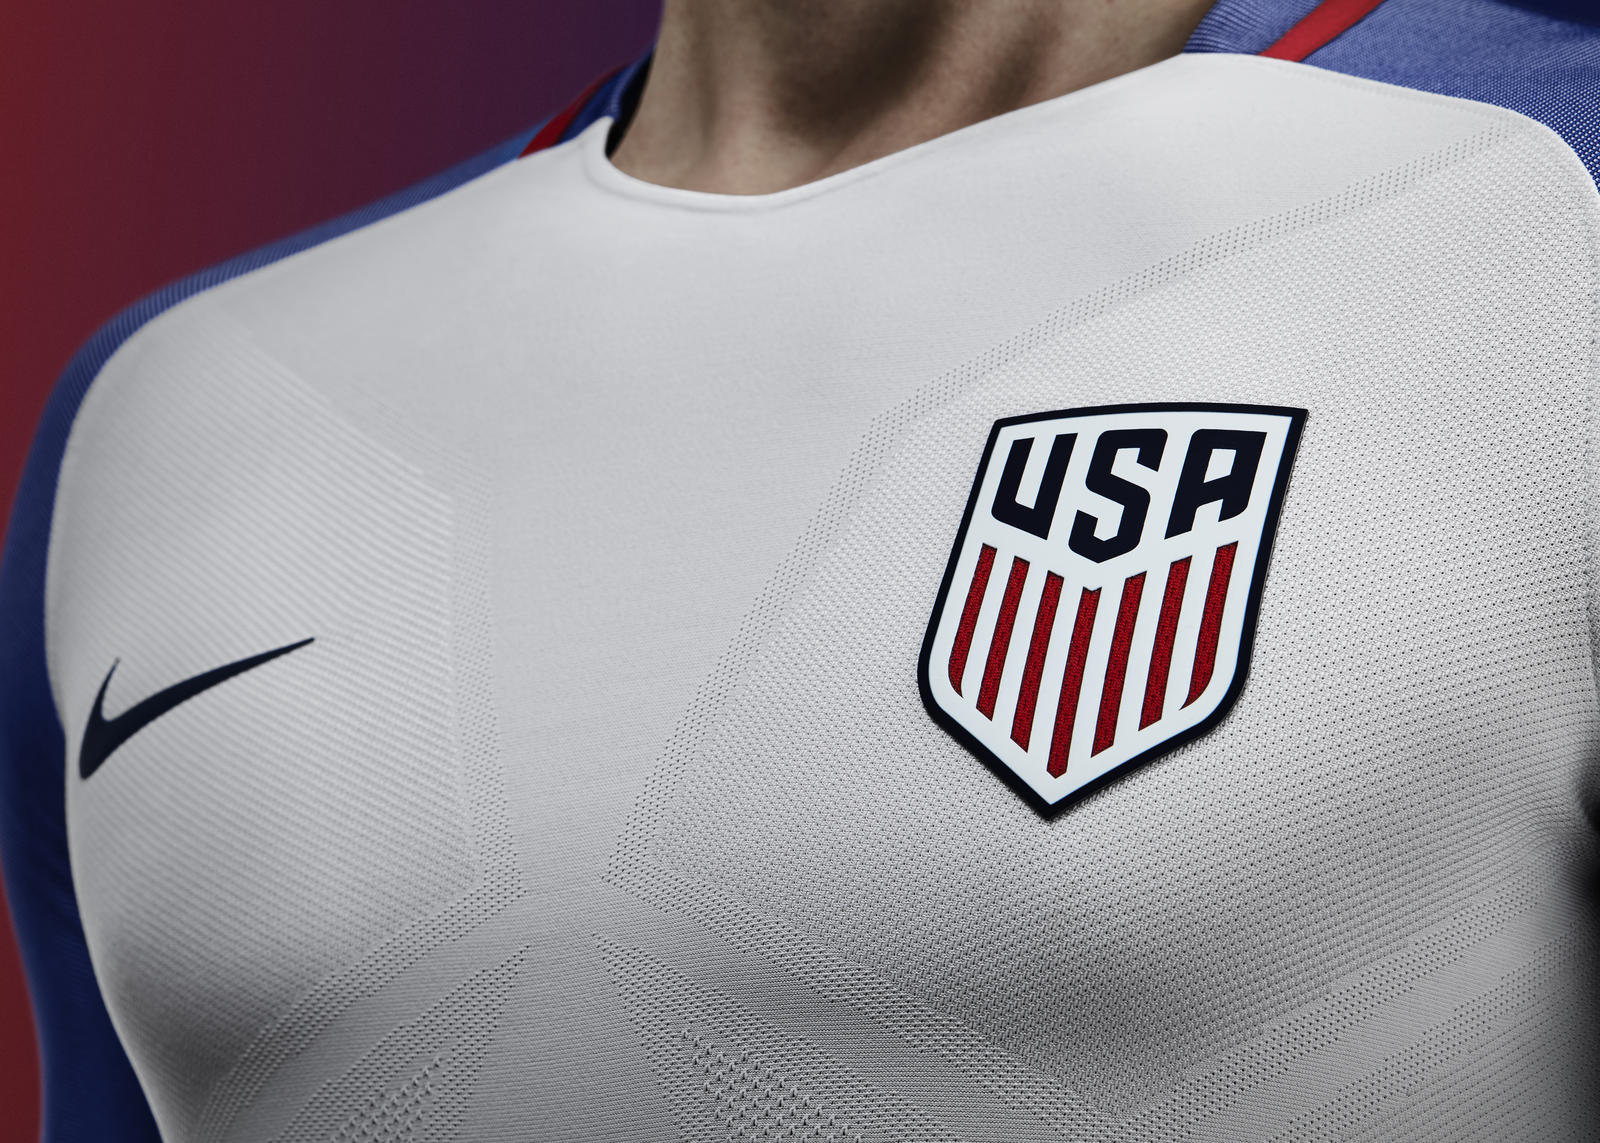 9bd8c4c1398 USA 2016 National Men and Women s Soccer Kits - Nike News